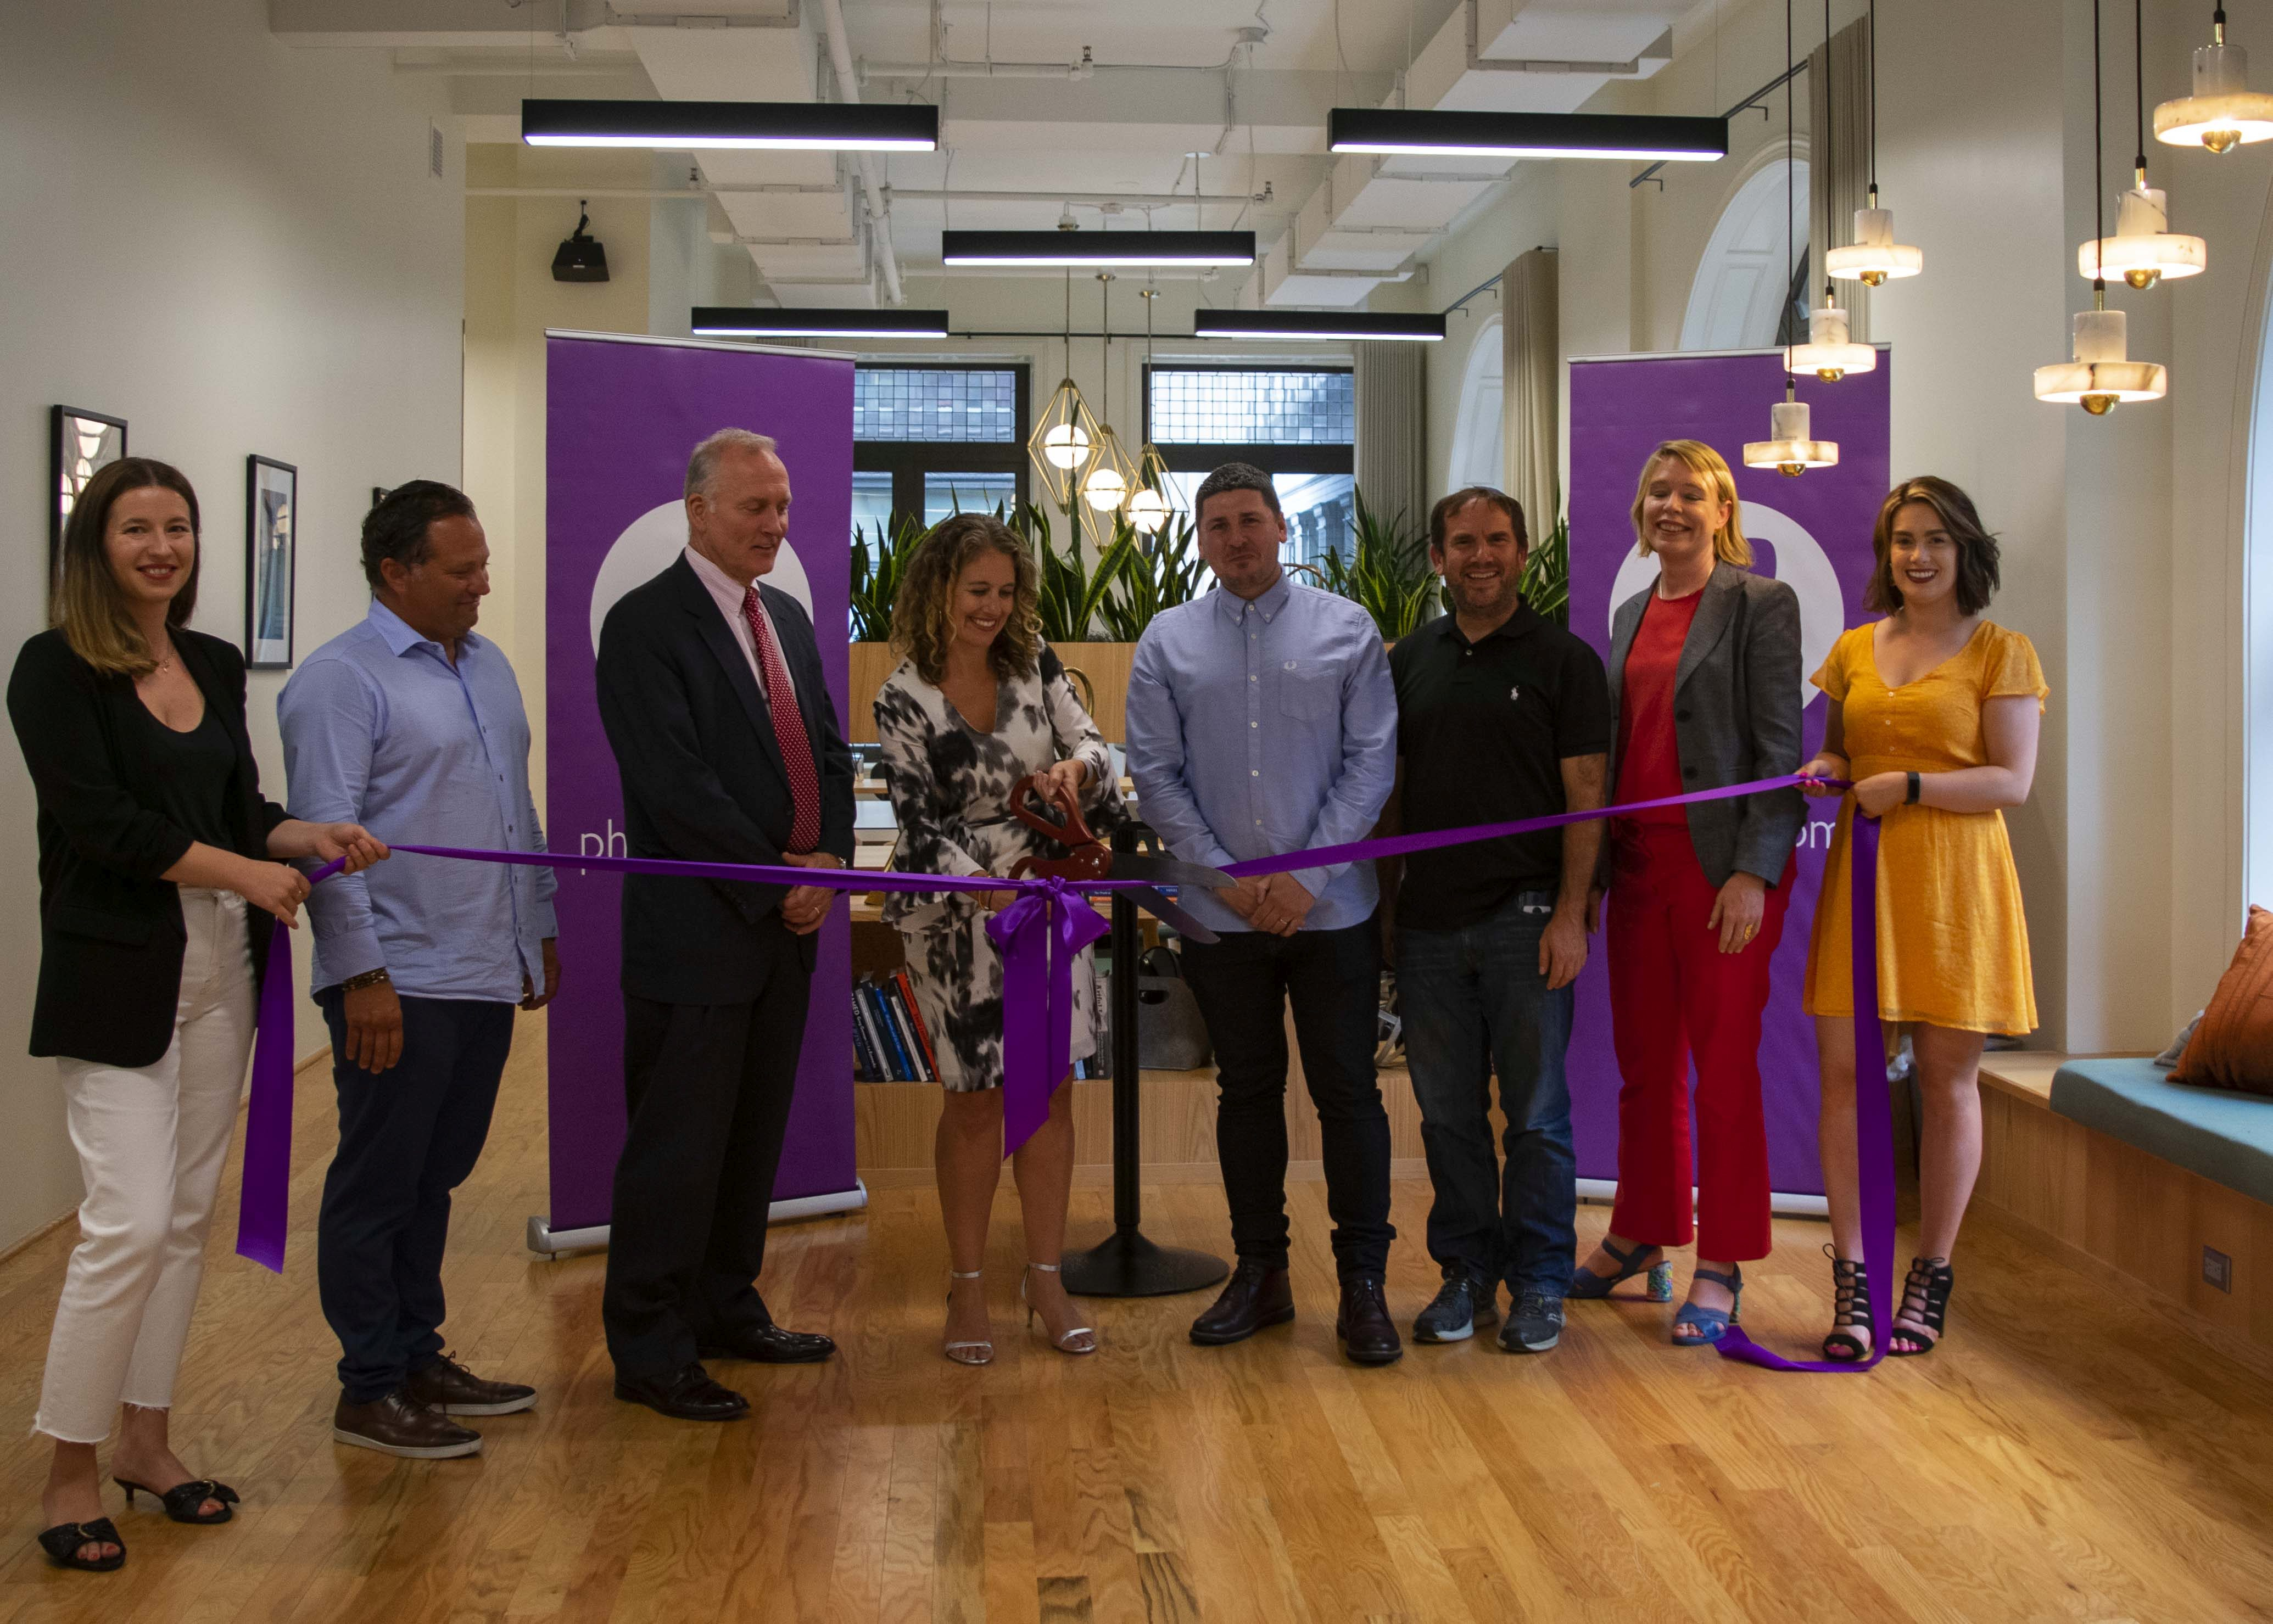 Premium salon owners and government leaders from the city of Philadelphia join the Phorest team as they open their US office.  -